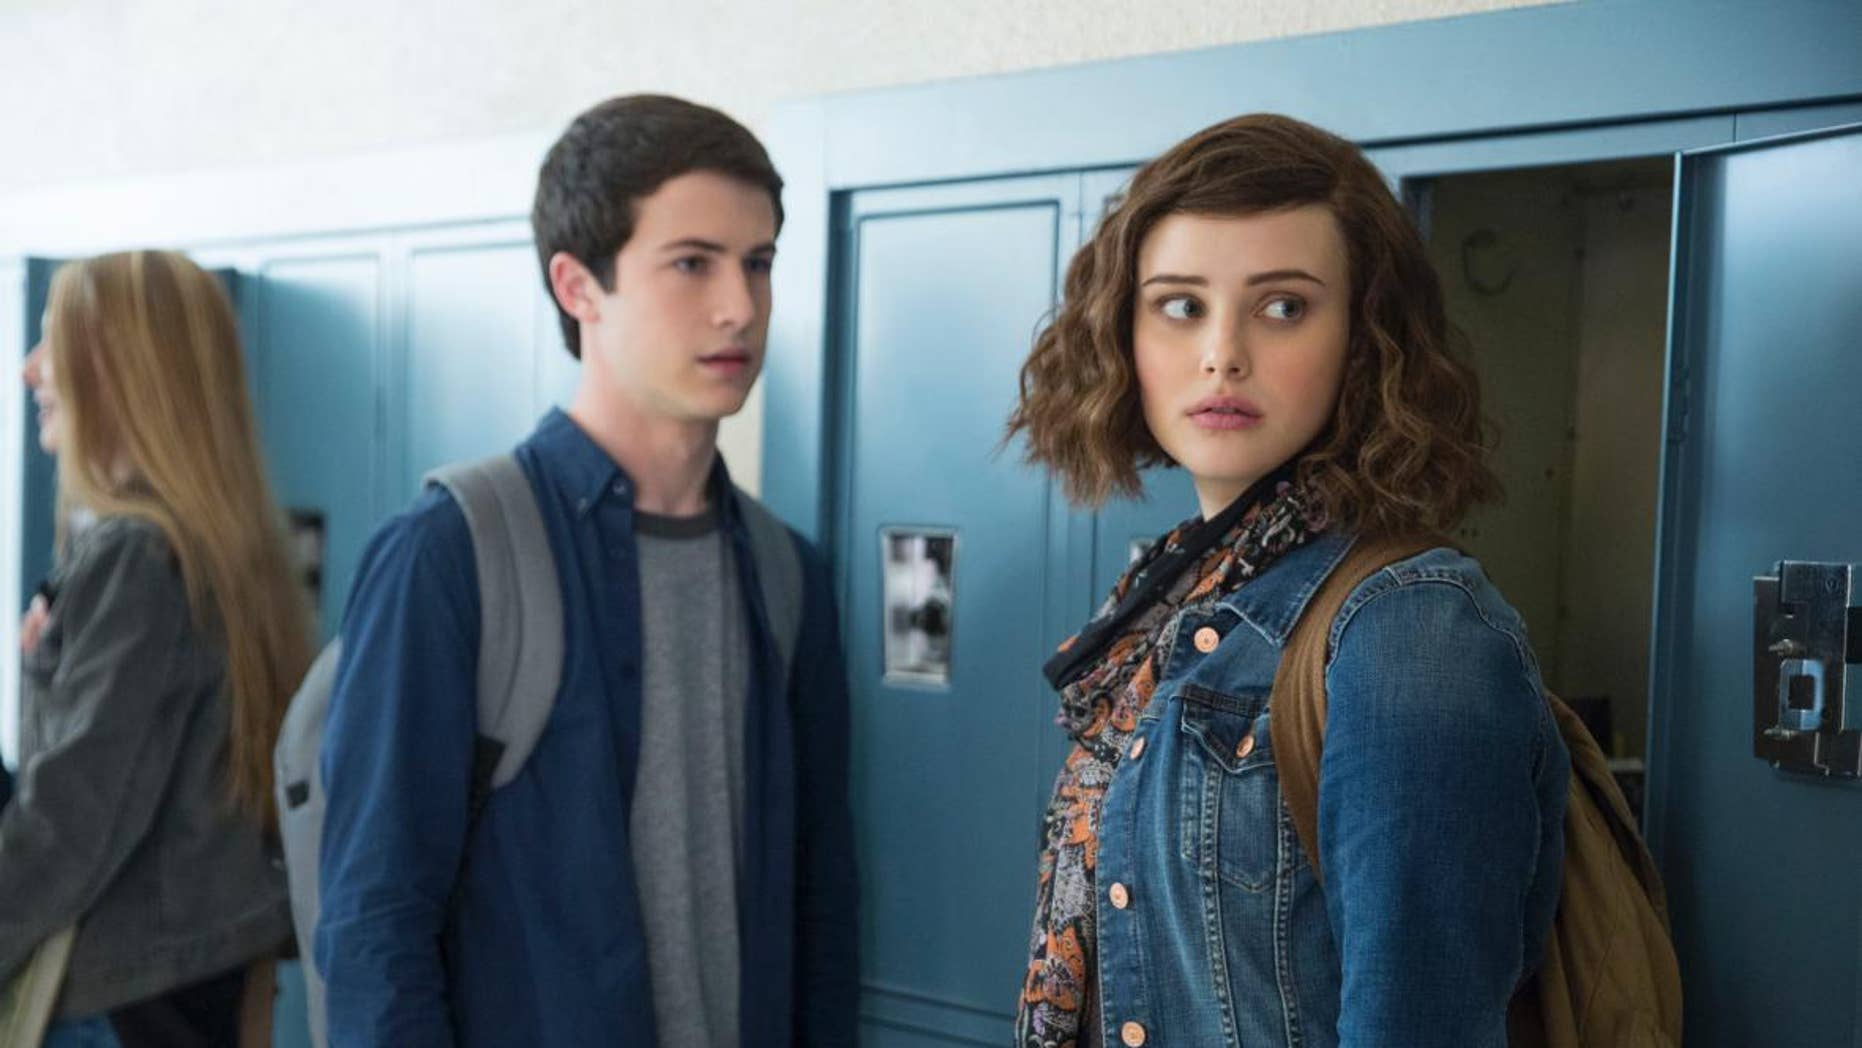 """Actors Dylan Minnette and Katherine Langford seen in Netflix's """"13 Reasons Why."""""""